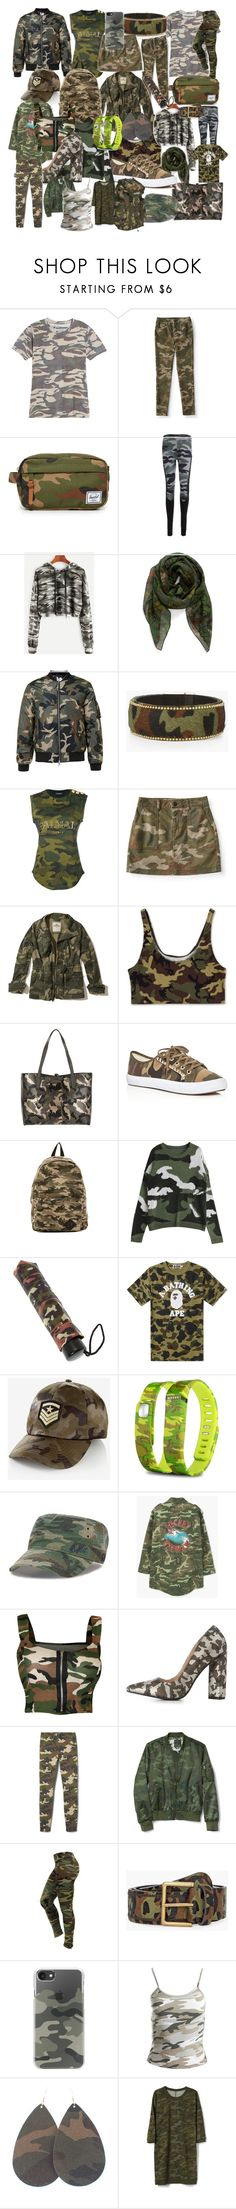 """When ur ex walks in and u gotta hide ASAP!!!!"" by sophiafbaumann on Polyvore featuring Prince Peter, Aéropostale, Herschel Supply Co., rag & bone, Chico's, Balmain, Hollister Co., GUESS, Jack Rogers and Madden Girl"